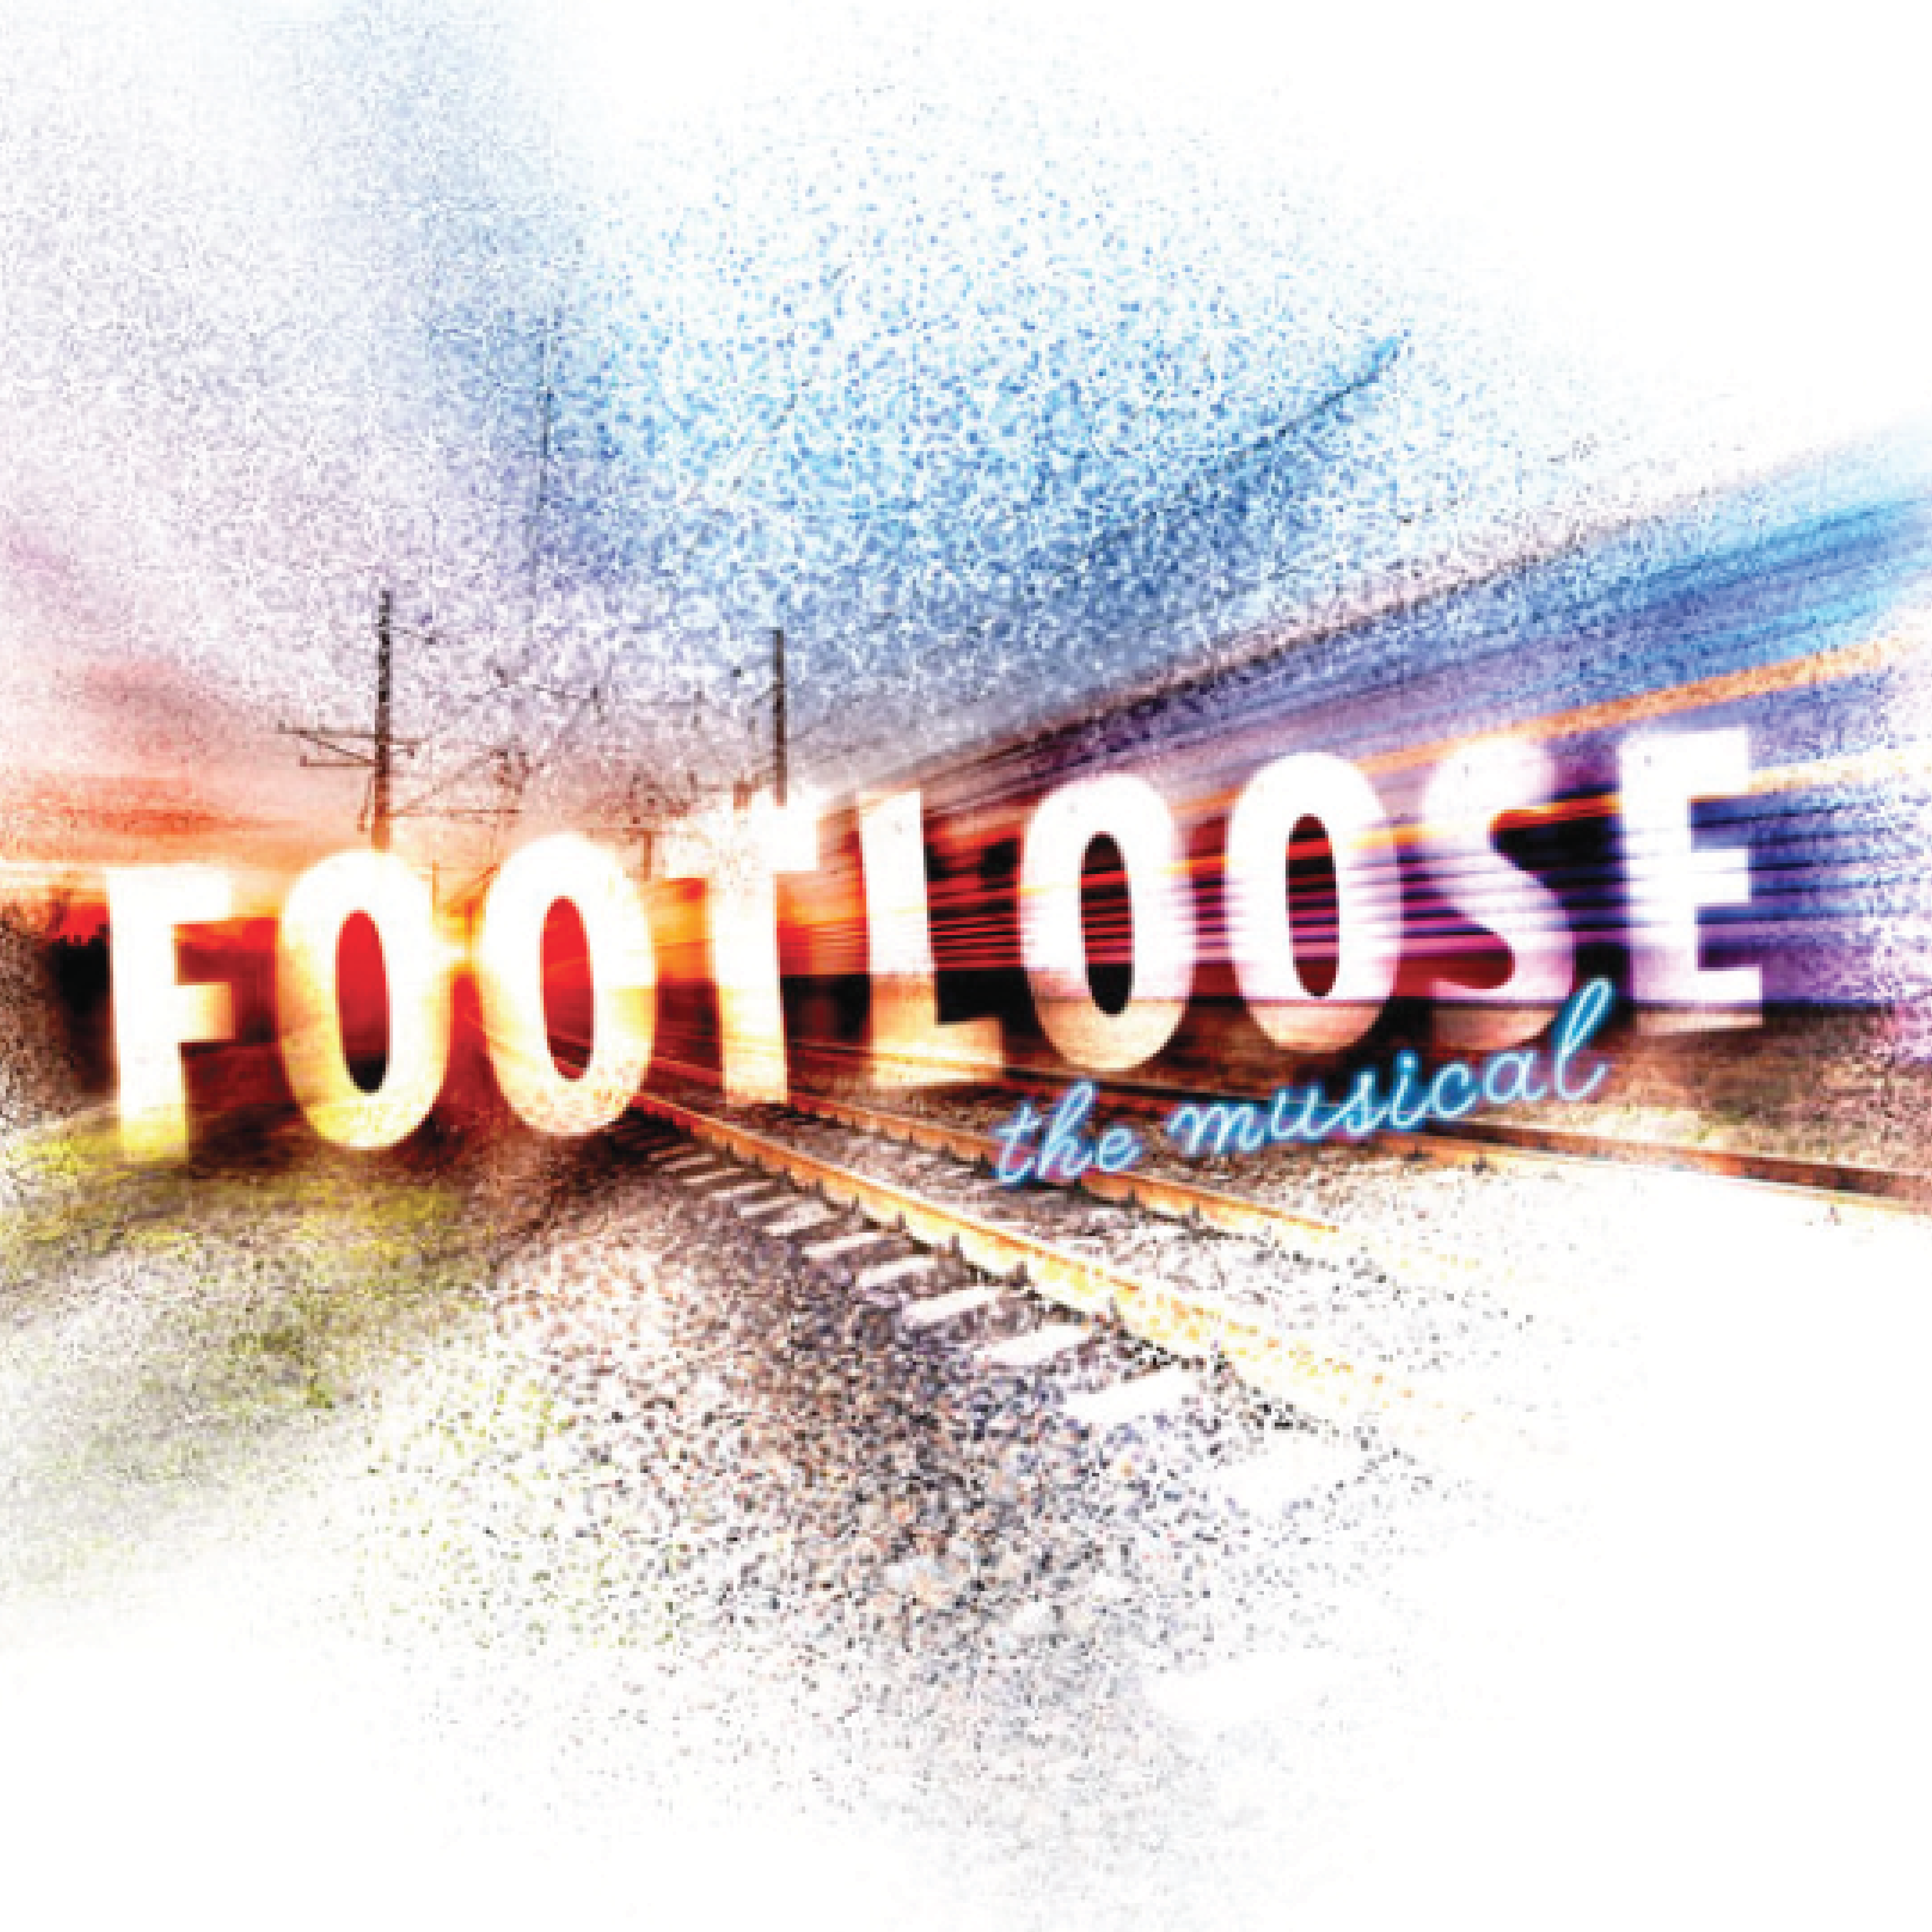 footloose - Auditions